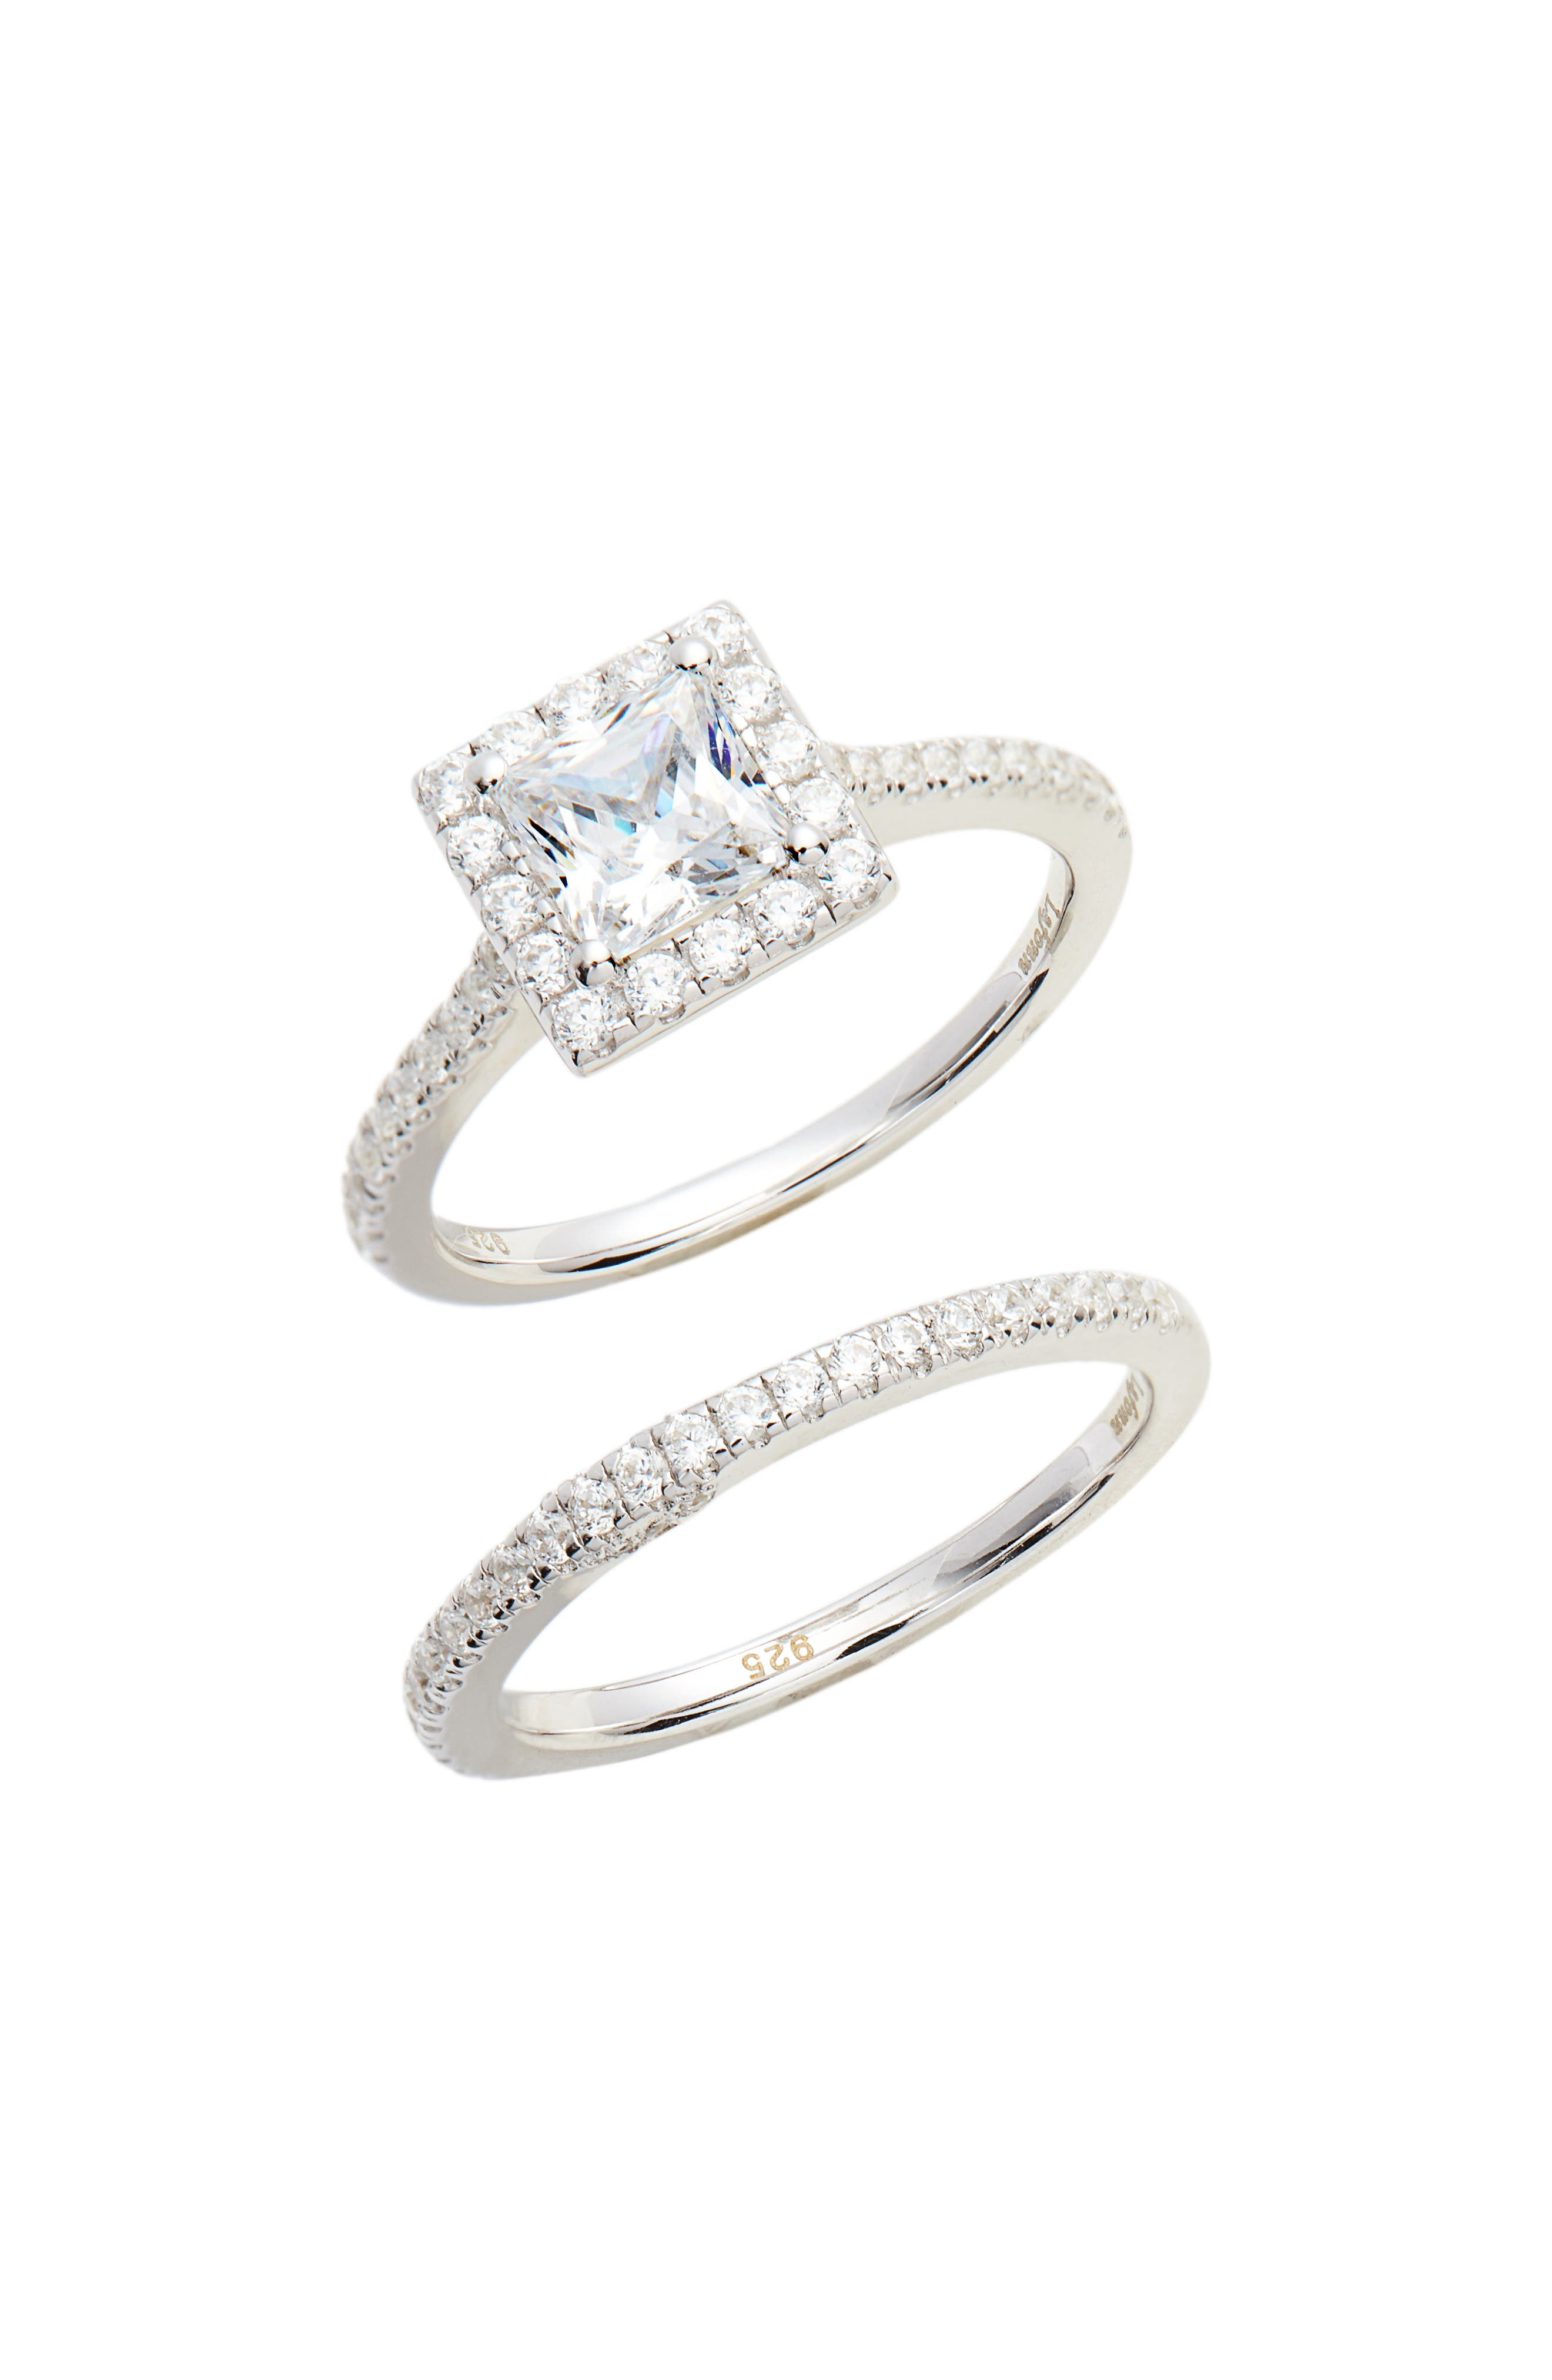 Joined at the Heart Cushion Cut Halo Wedding Ring Set,                         Main,                         color, SILVER/ CLEAR